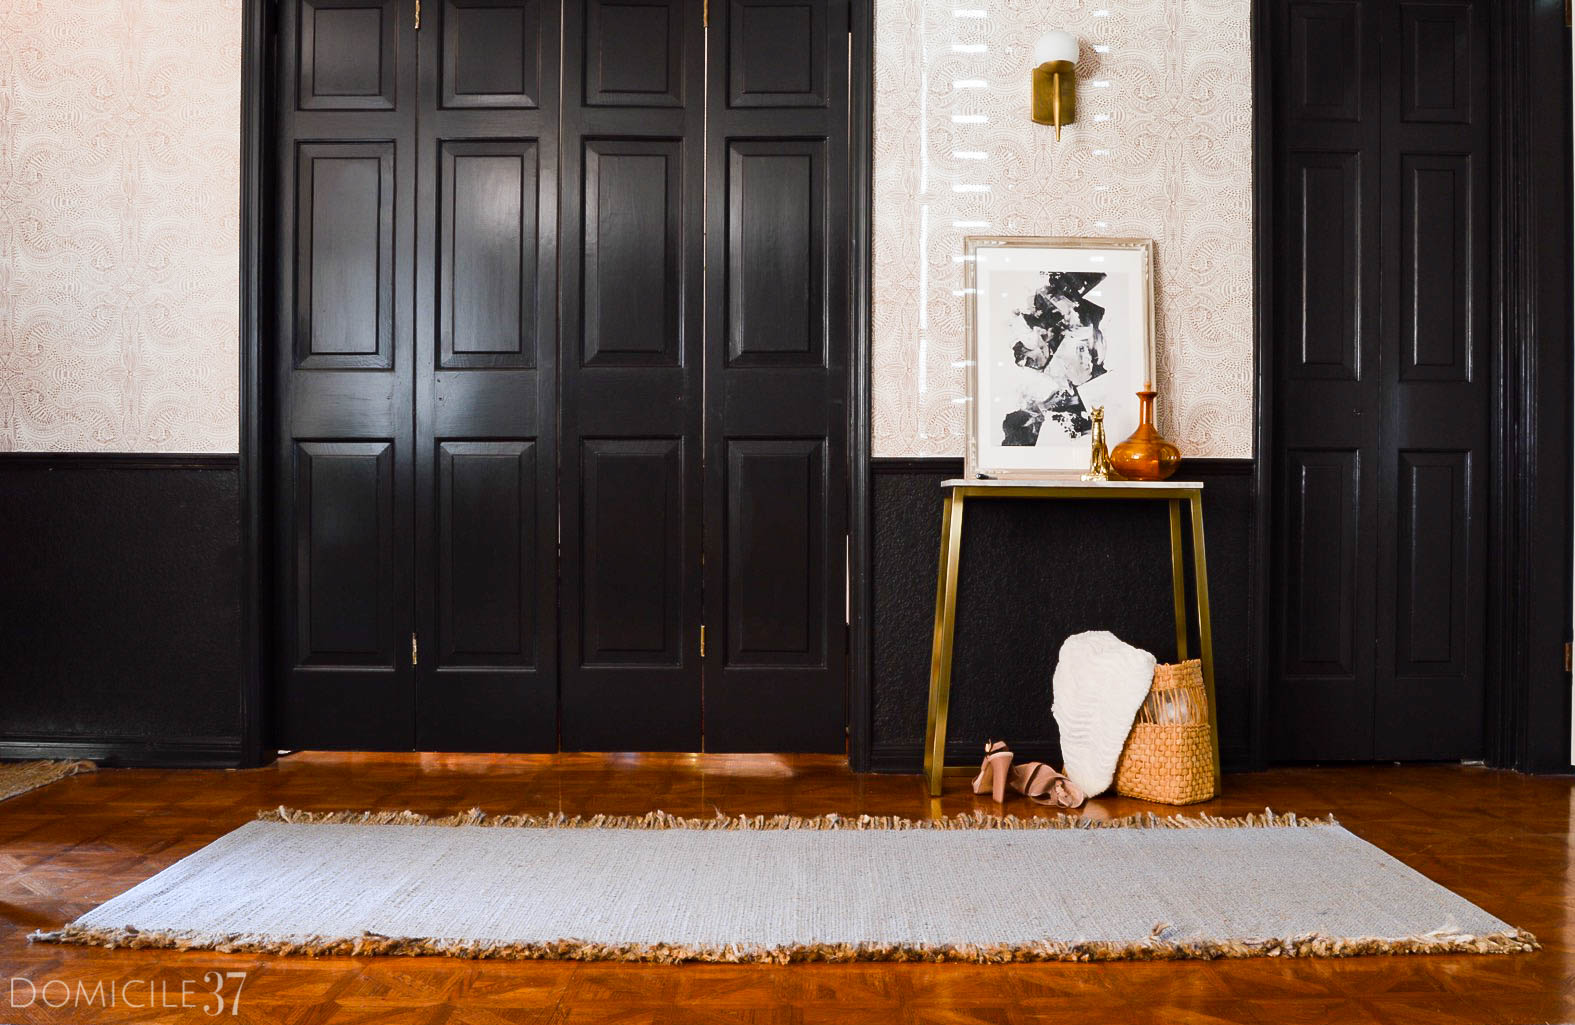 The Power of Paint | Room transformations | How paint transforms a space | Room Makeovers | Black Foyers | 1950's home | Black Doors | Andanza Wallpaper Hygge & West | Black Molding